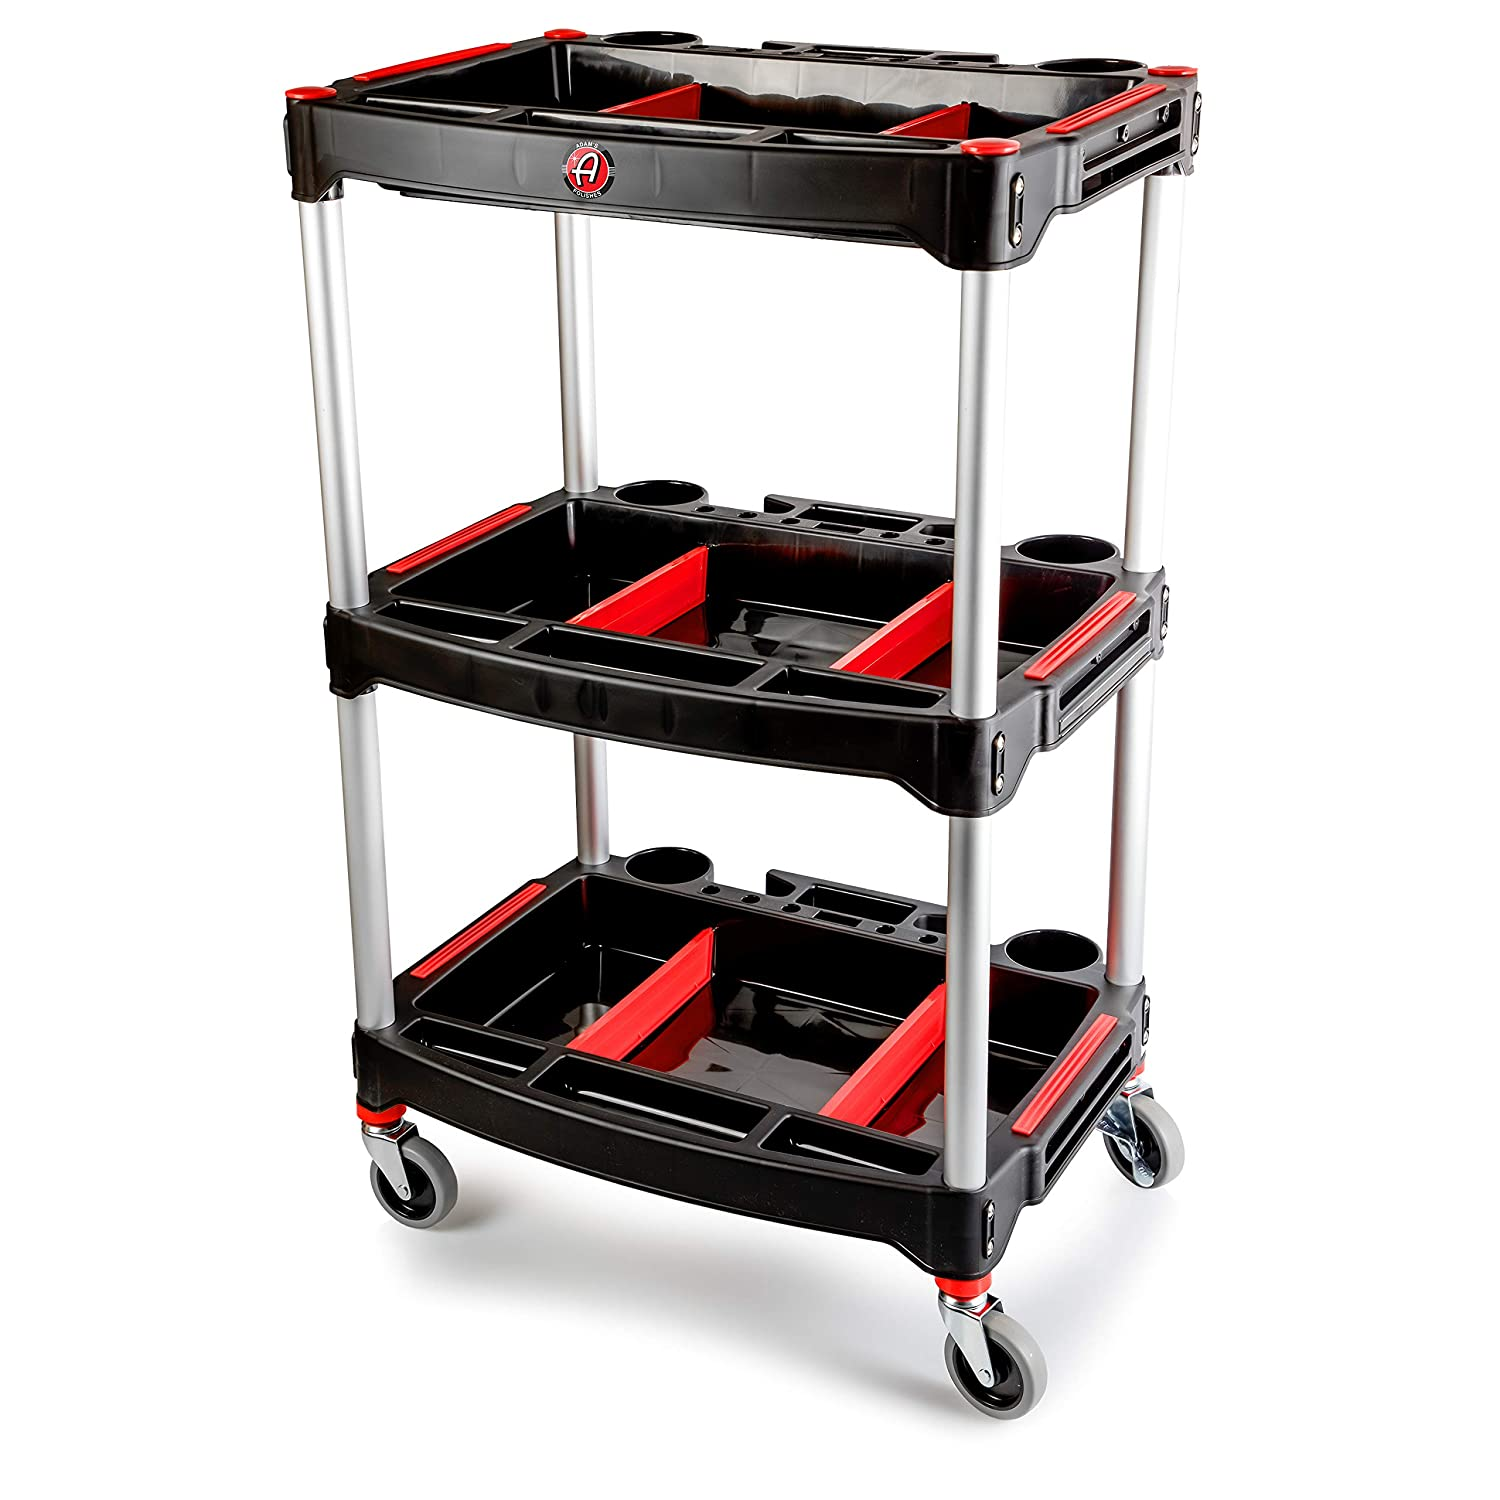 Adam's Standard Detailing Cart - Compact Designed Garage Storage Cart Stores All of Your Detailing Products and Tools - Customizable Storage Compartments and Magnet Tool Bar